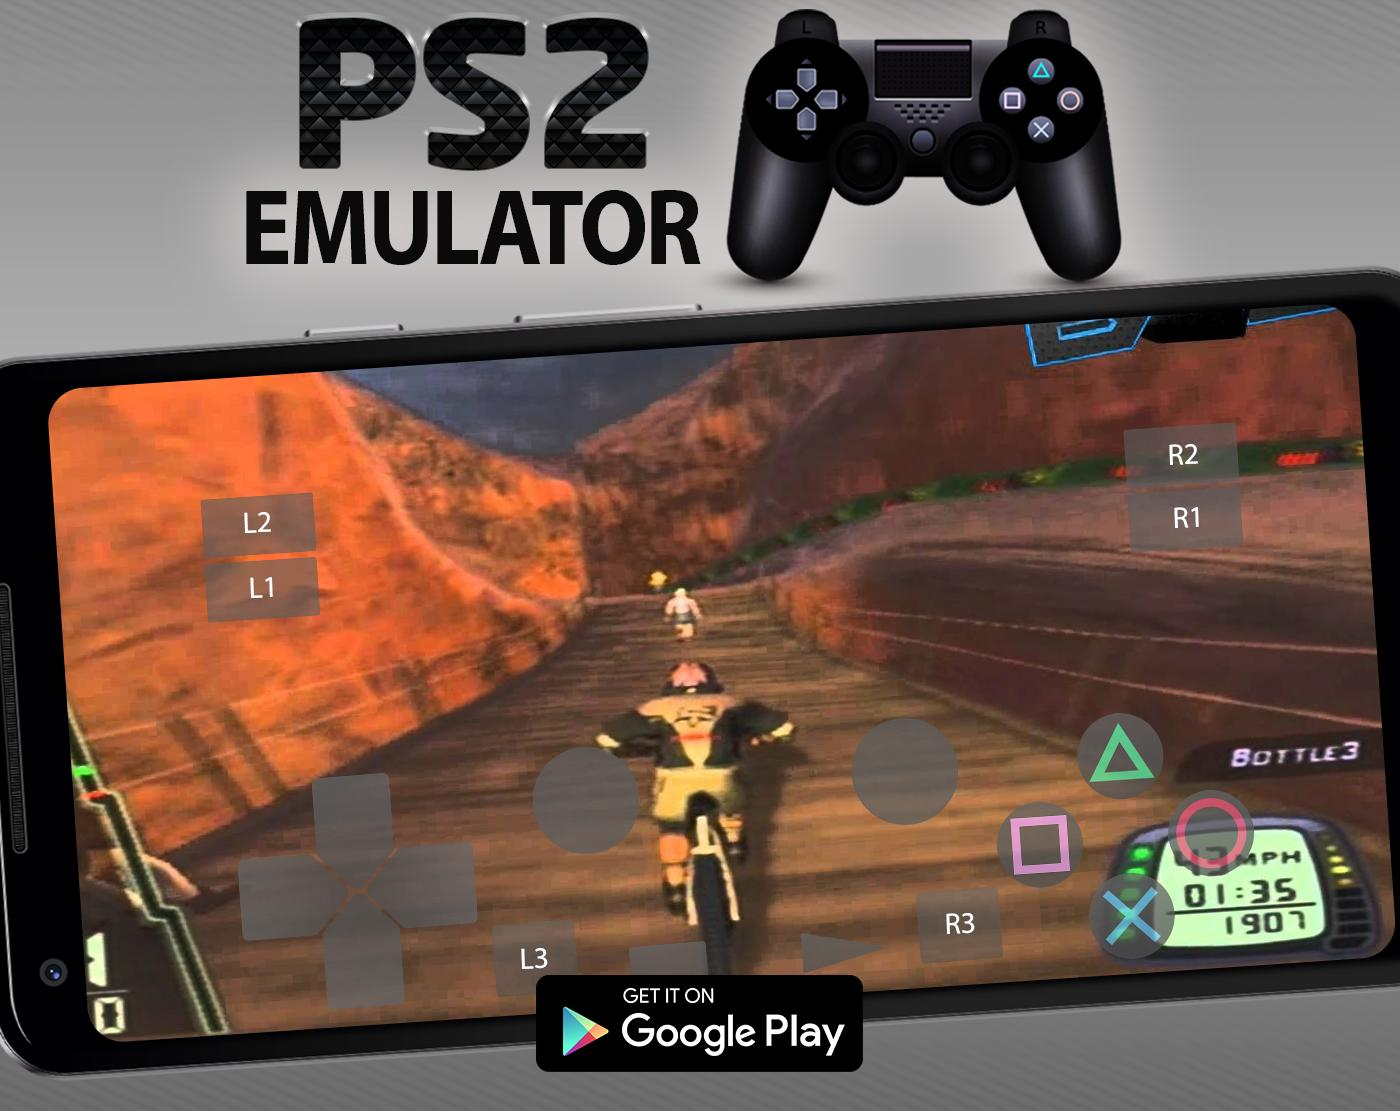 playstation 2 emulator downloads